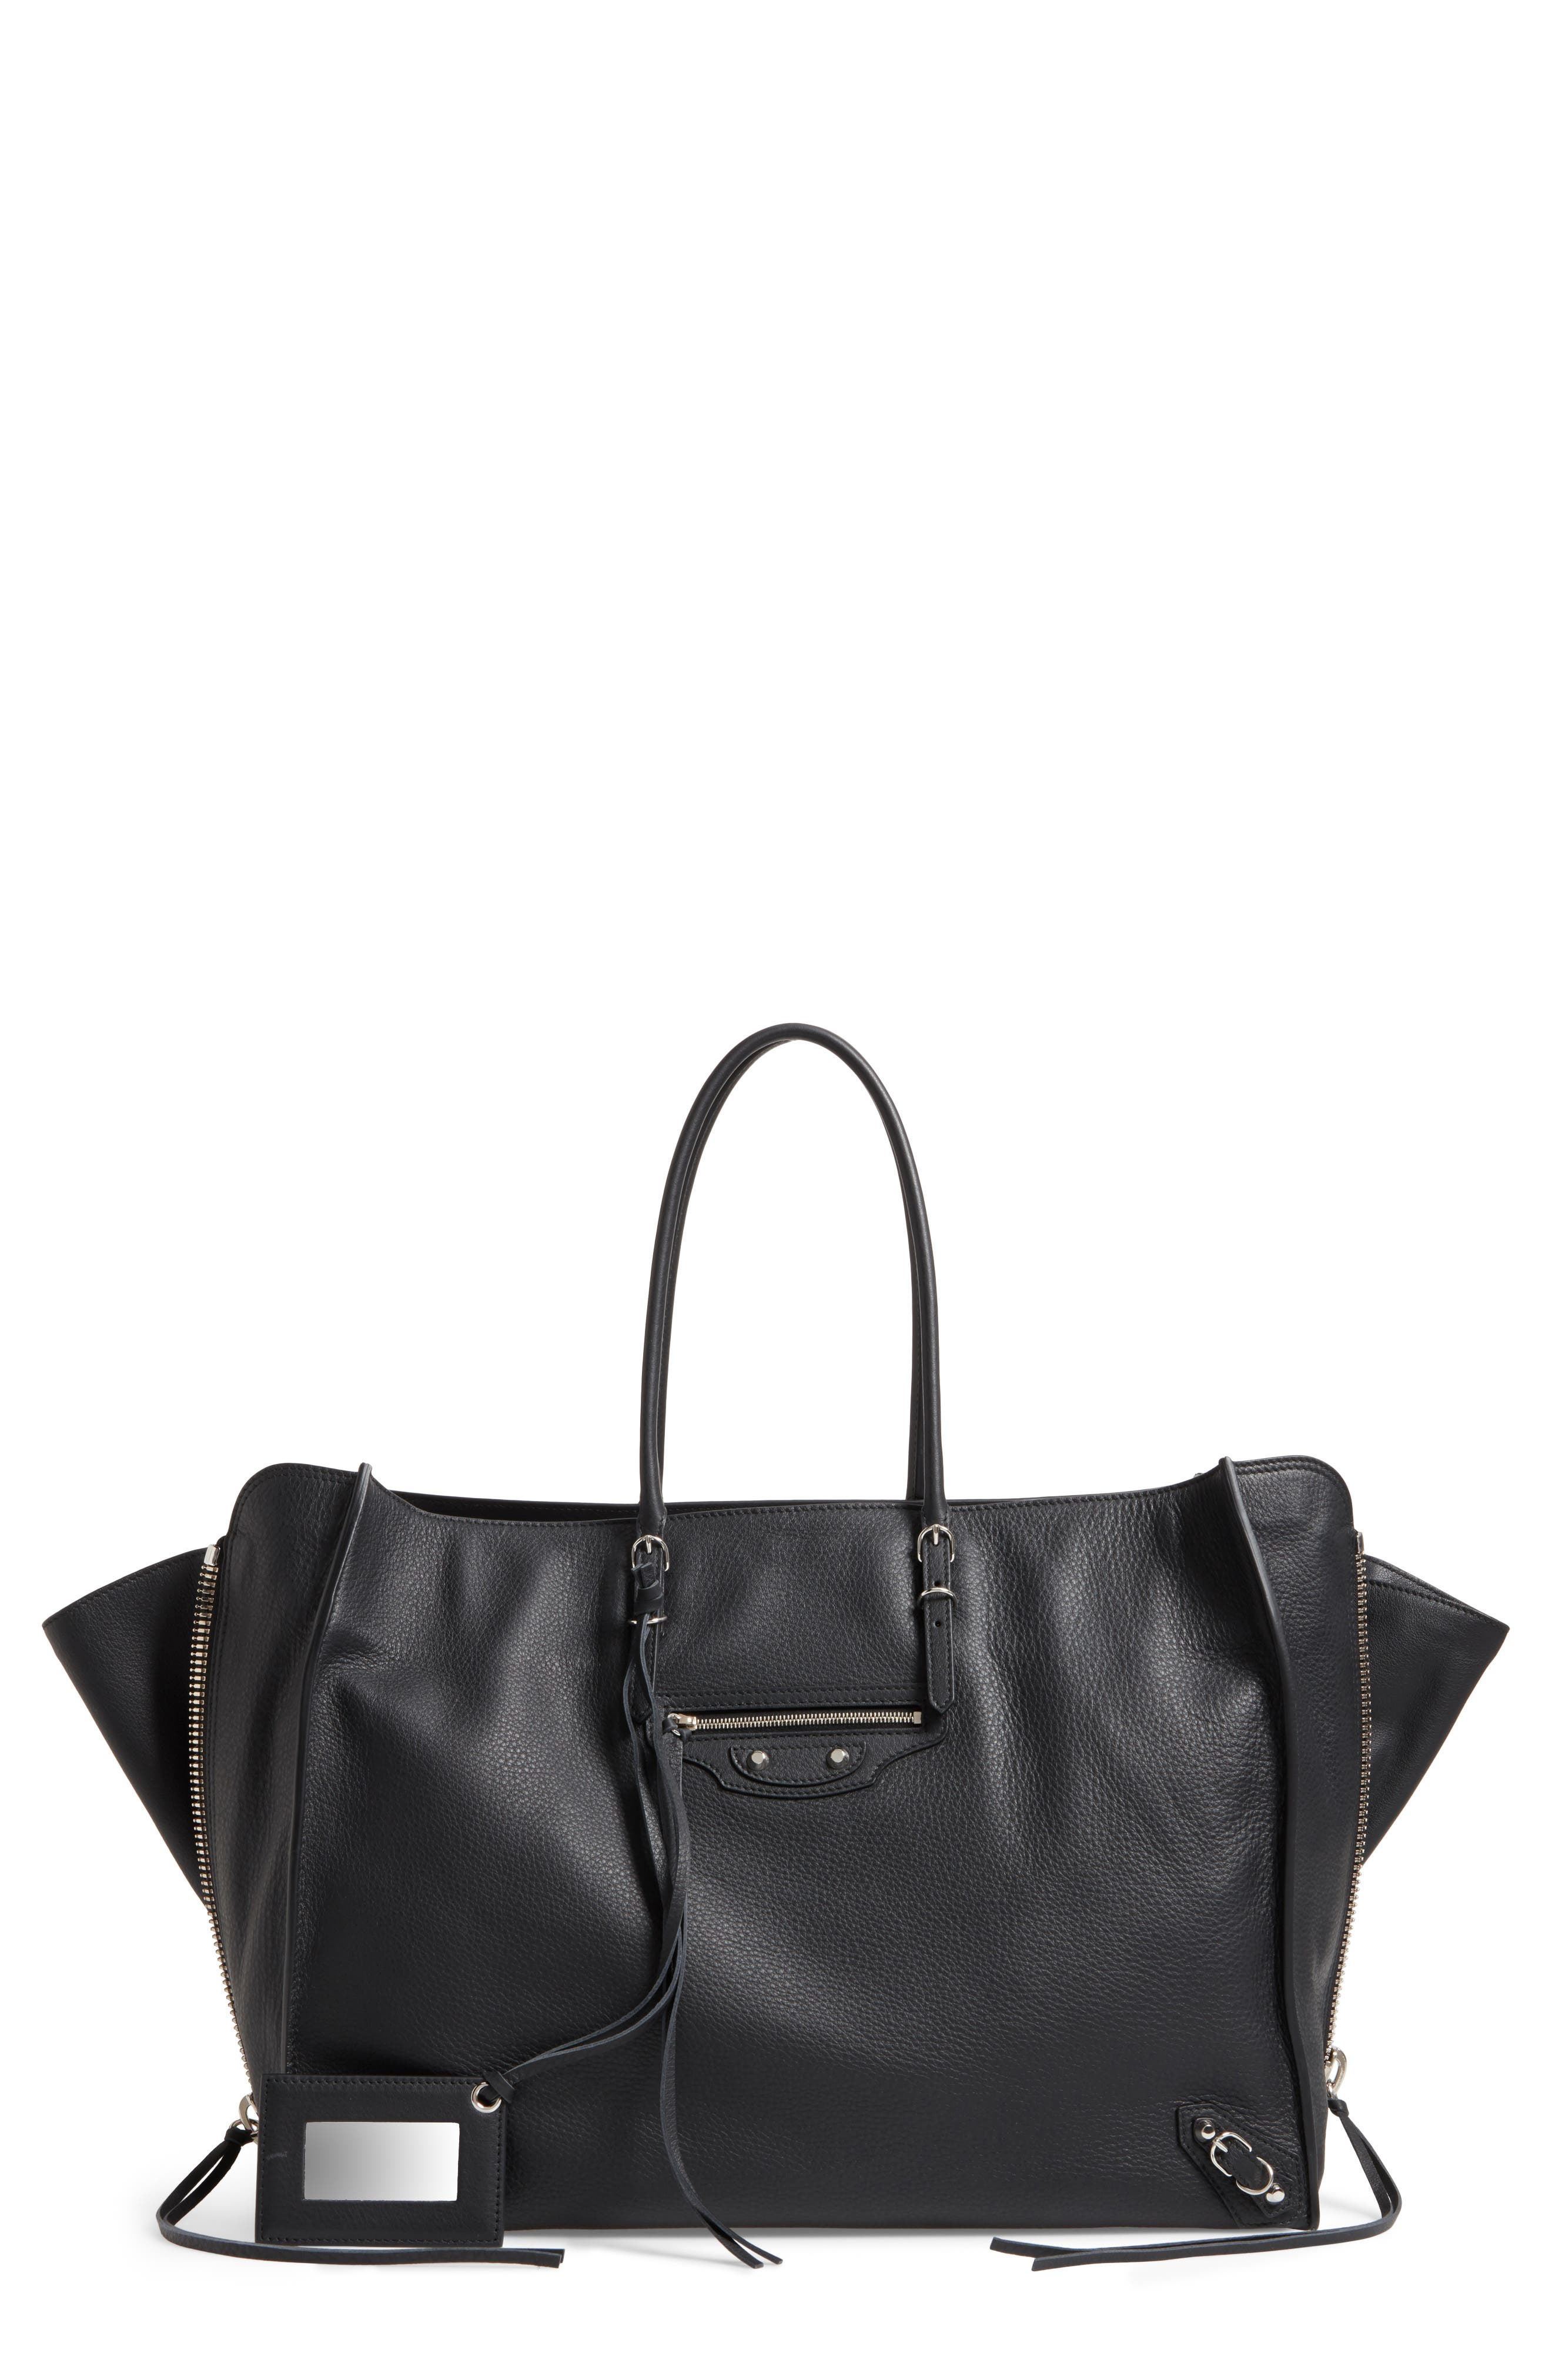 Papier A4 Zip Around Leather Tote,                             Main thumbnail 1, color,                             001